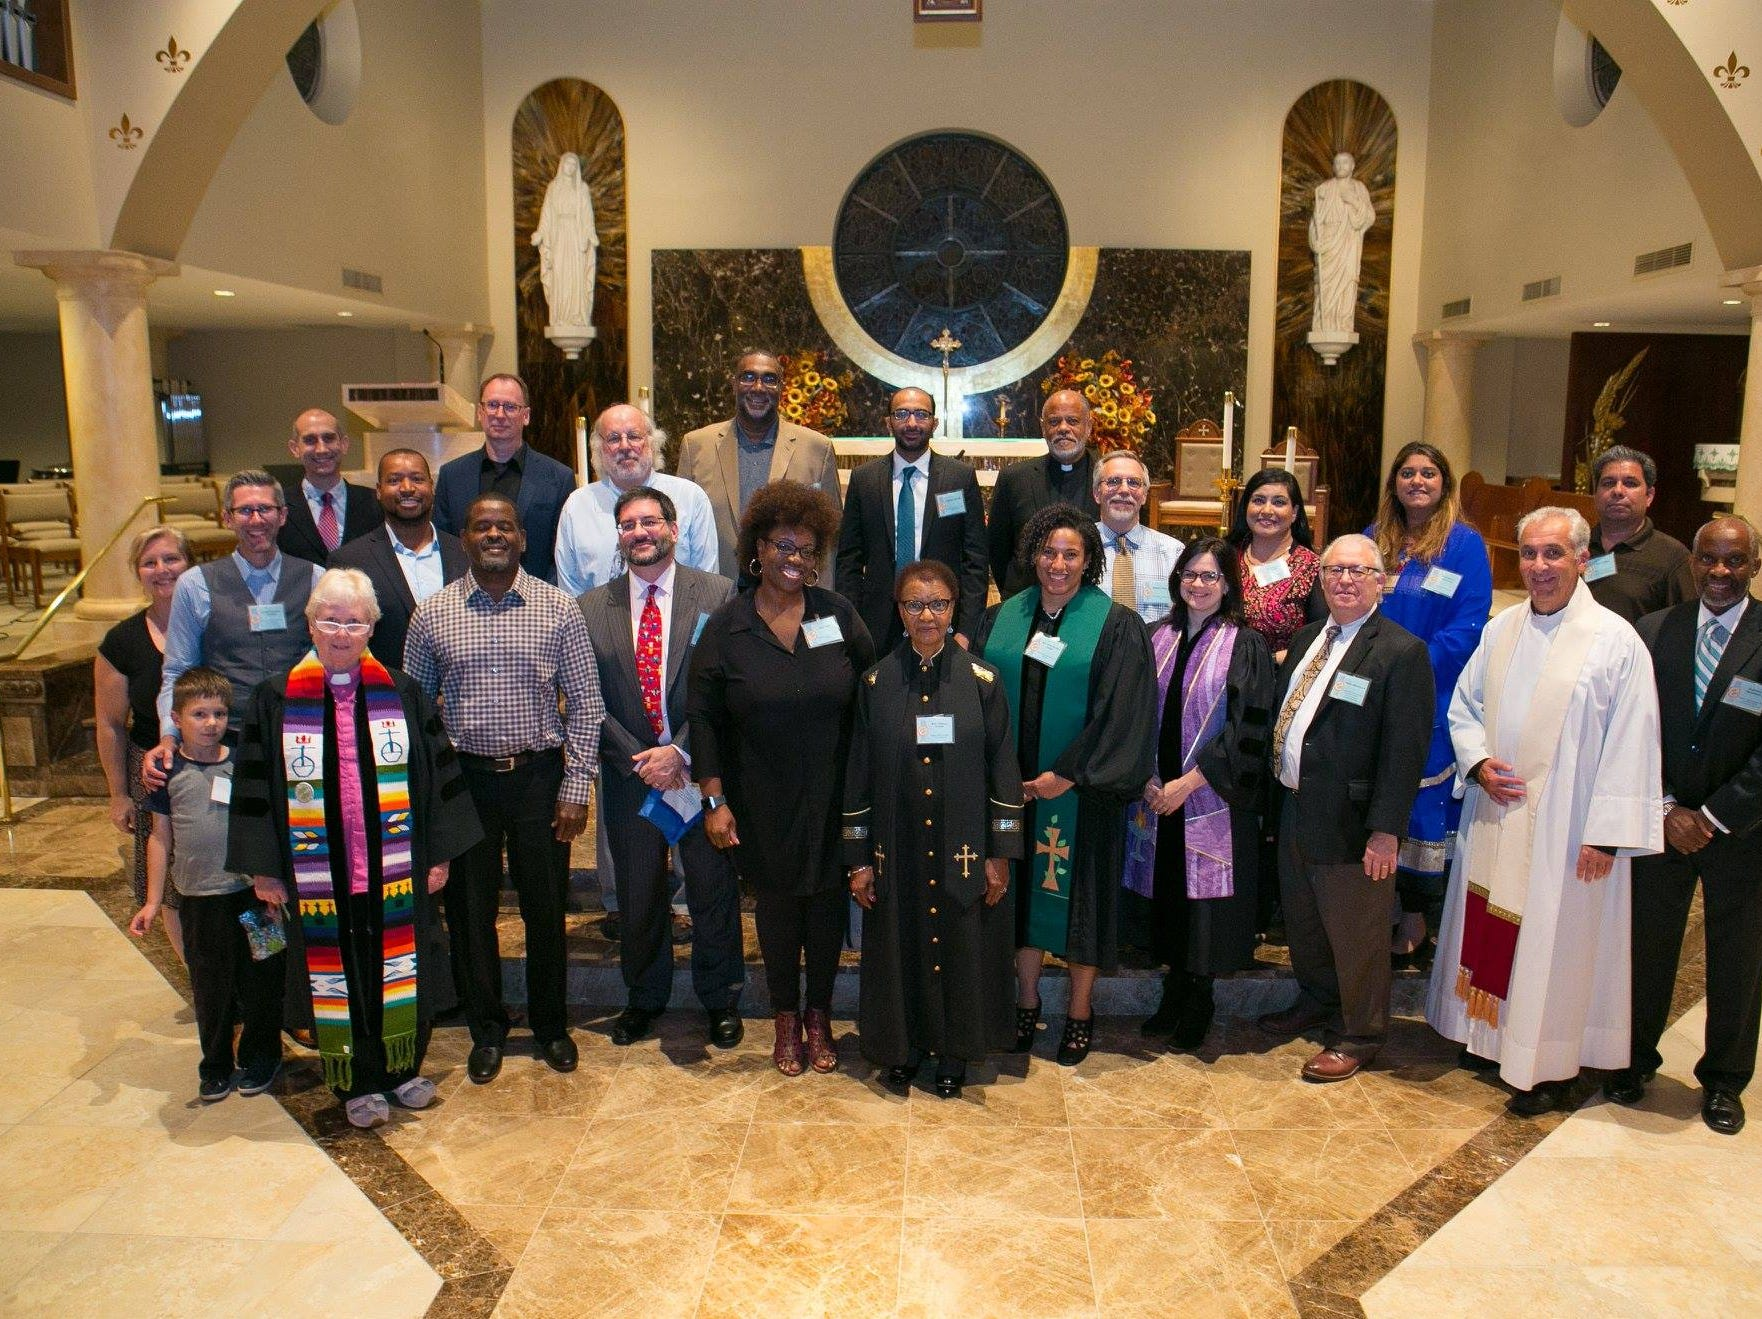 Love and common bonds shine at interfaith gathering in Scotch Plains